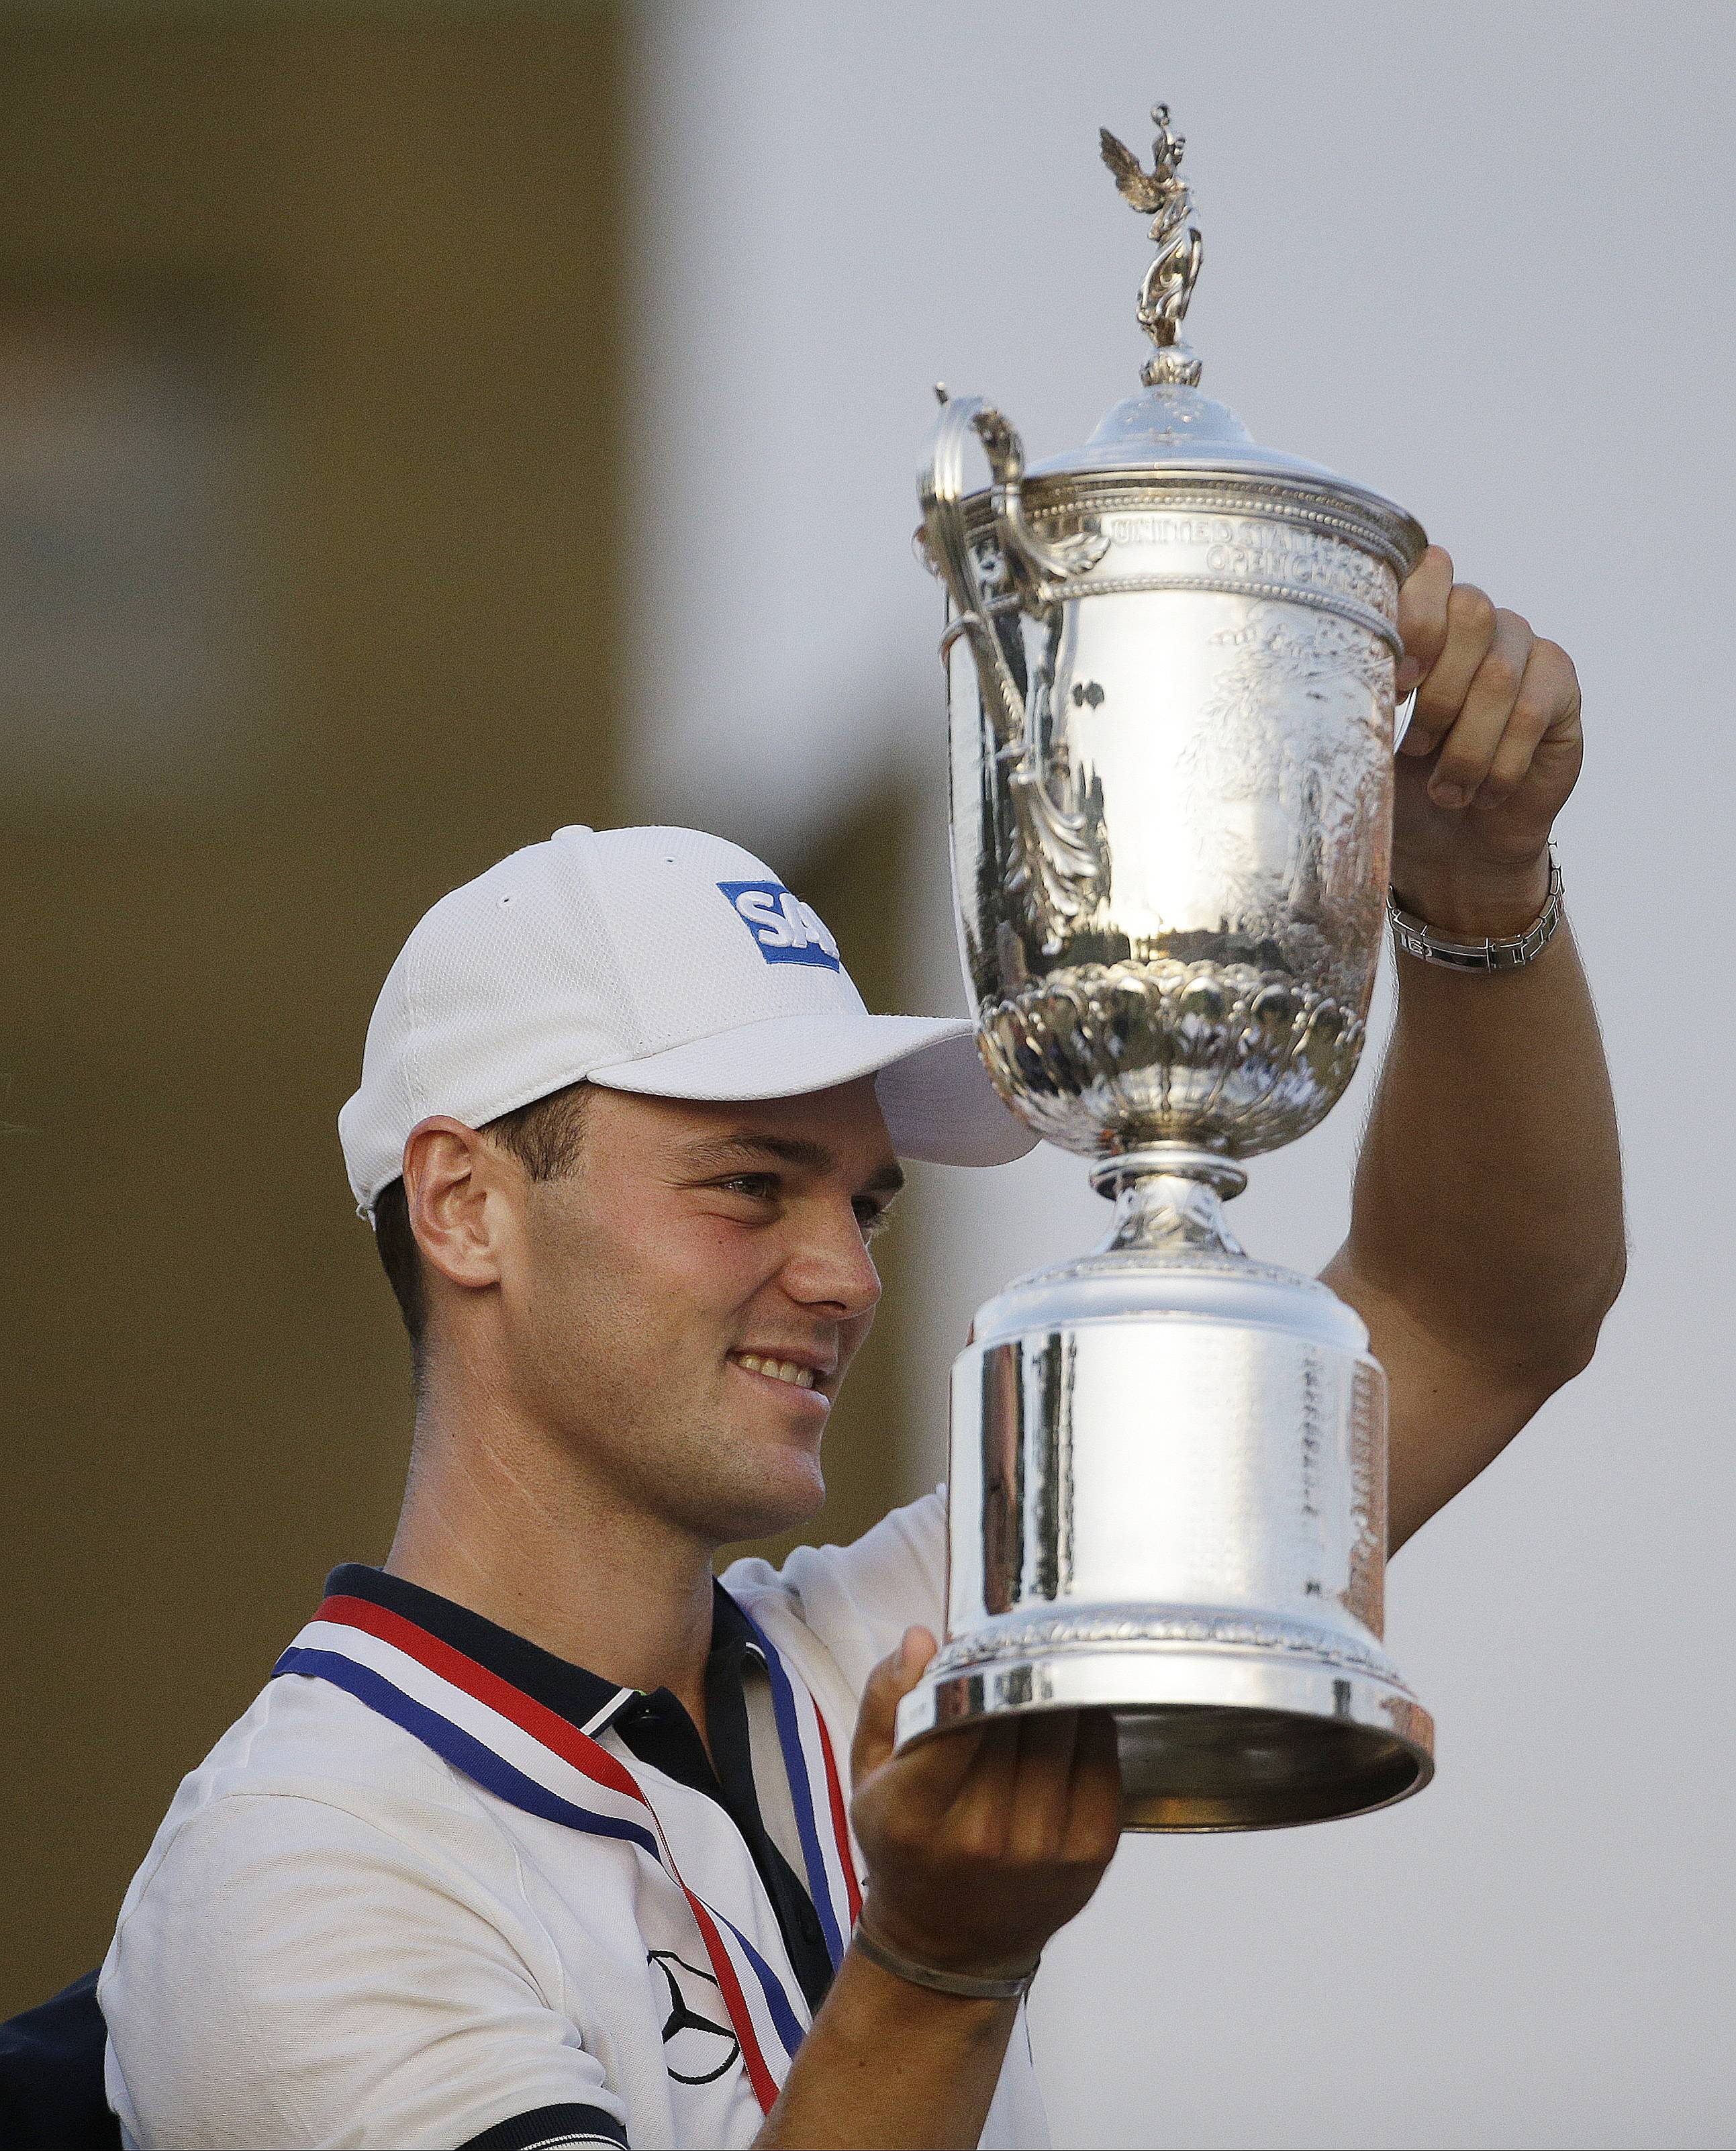 Martin Kaymer, of Germany, holds up the trophy after wining the U.S. Open golf tournament in Pinehurst, N.C., Sunday, June 15, 2014.